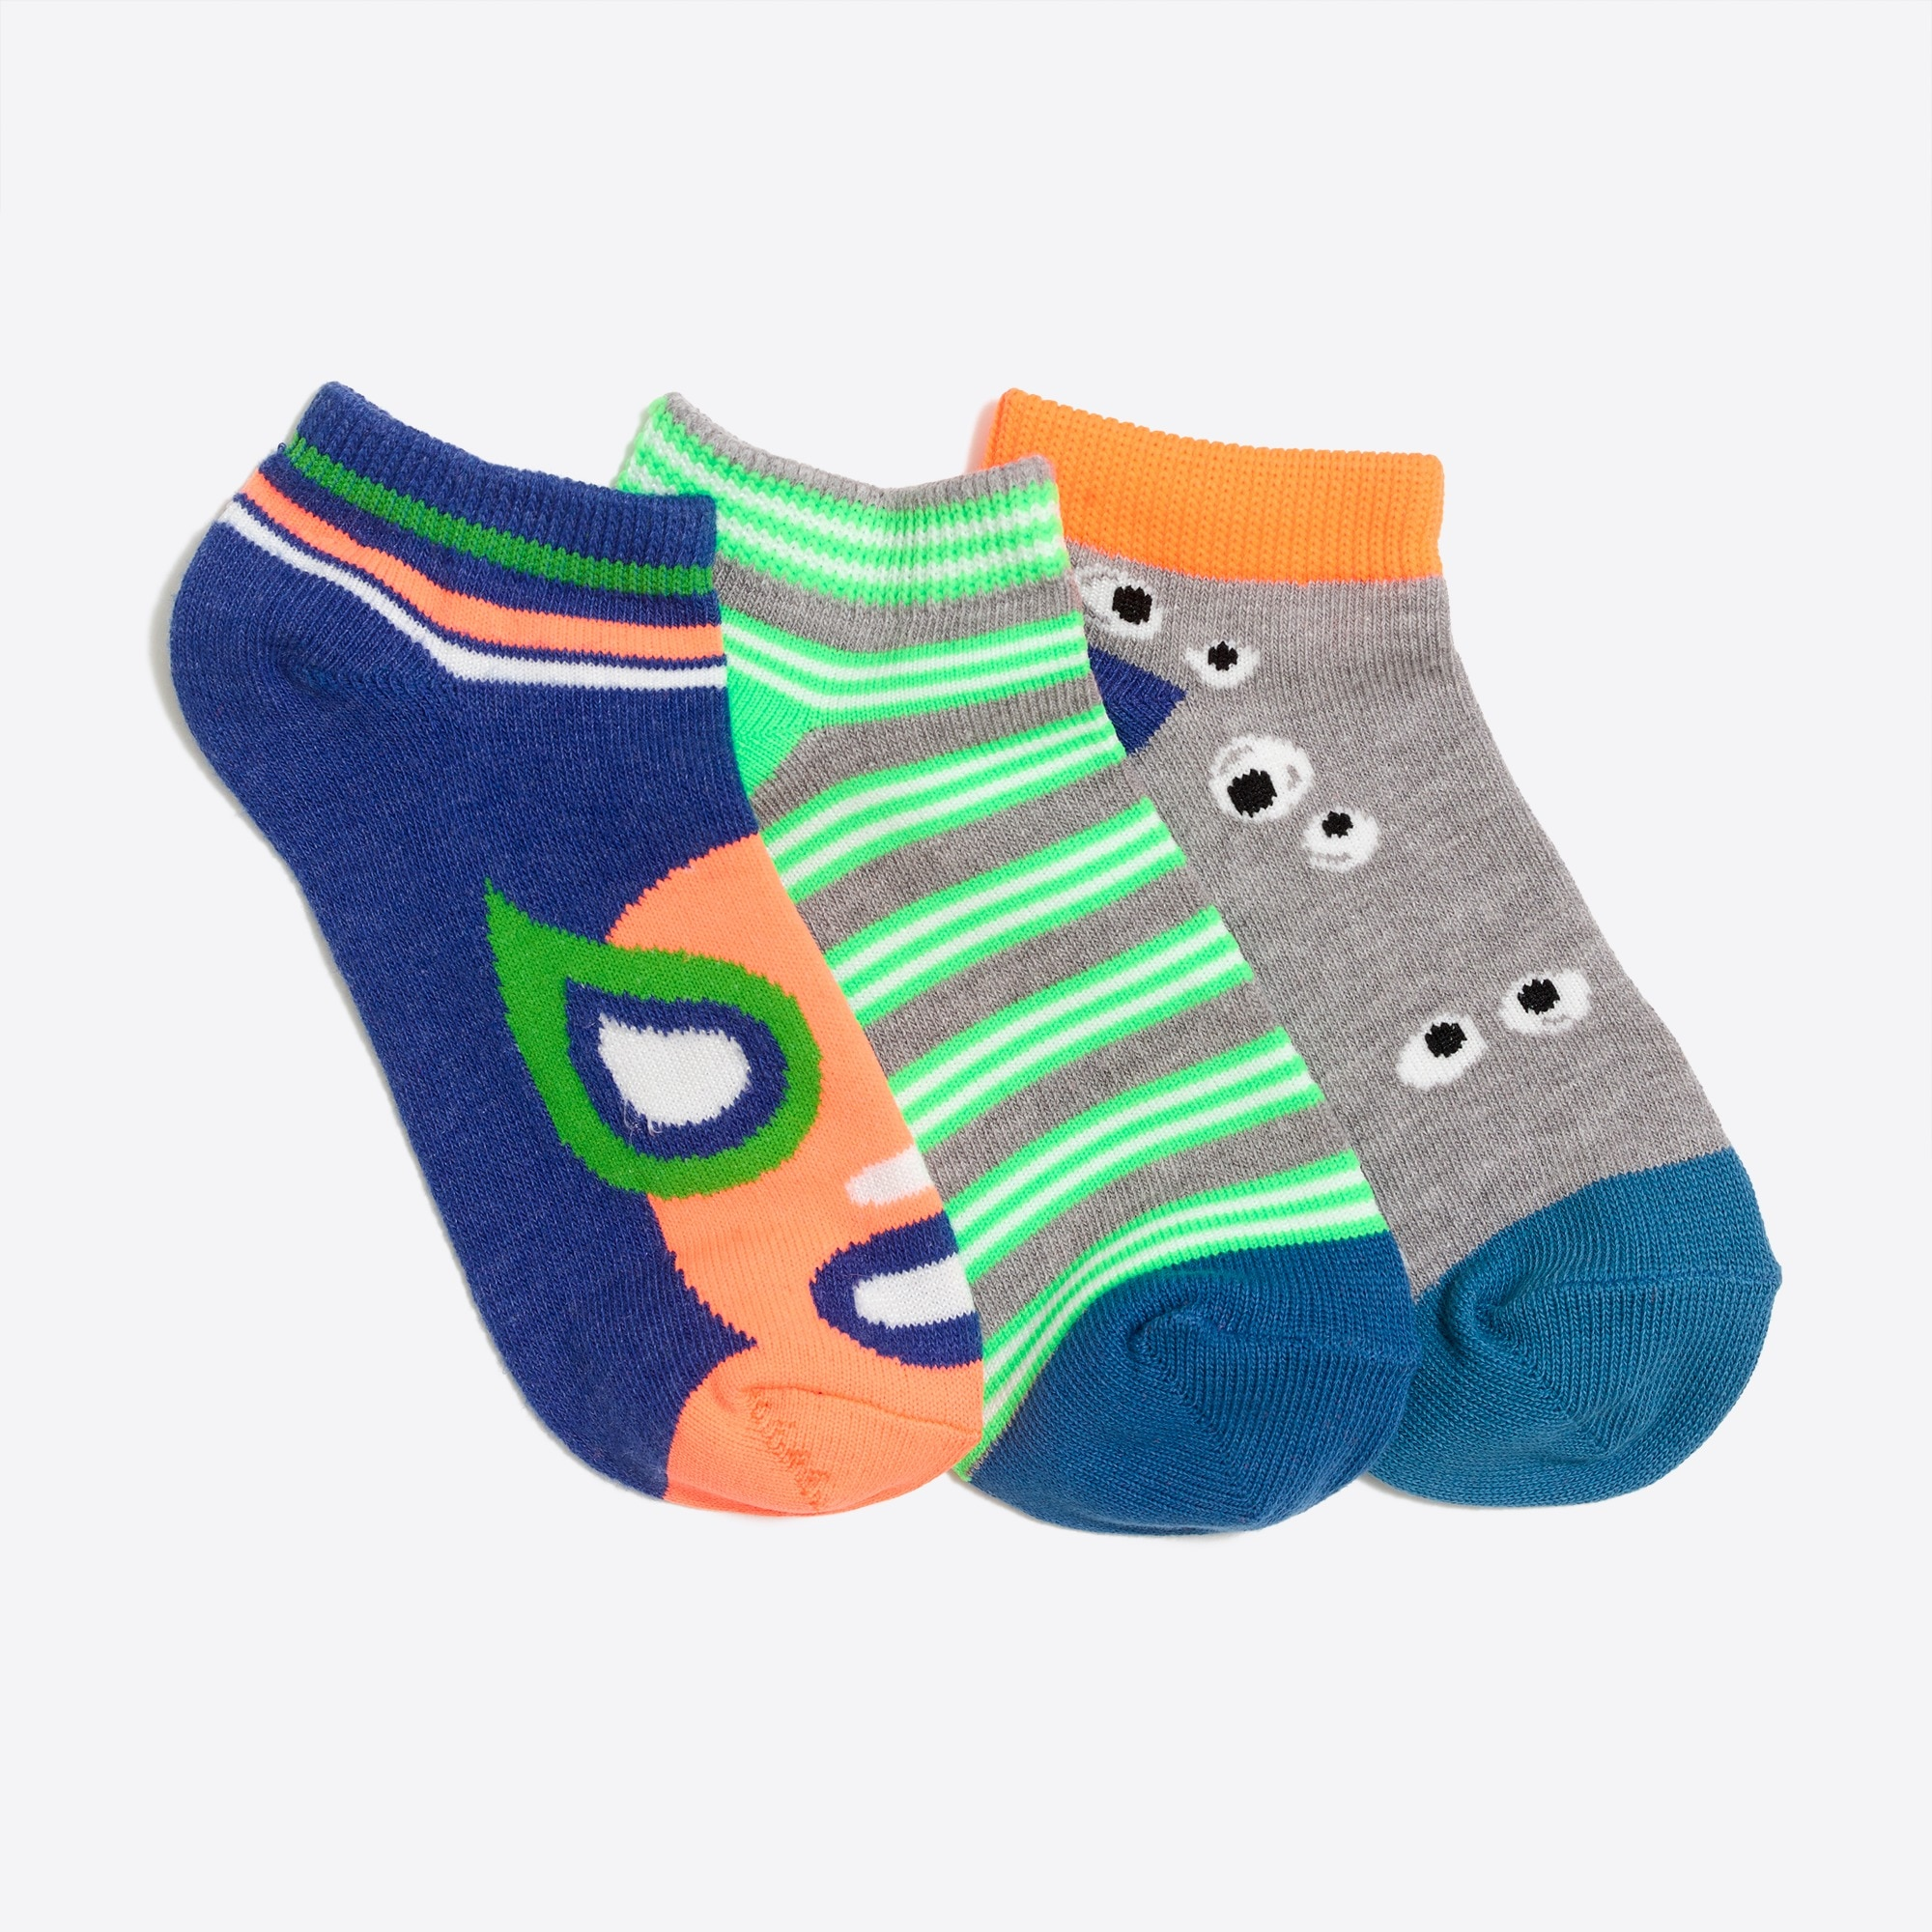 Boys' hero eyes ankle socks three-pack